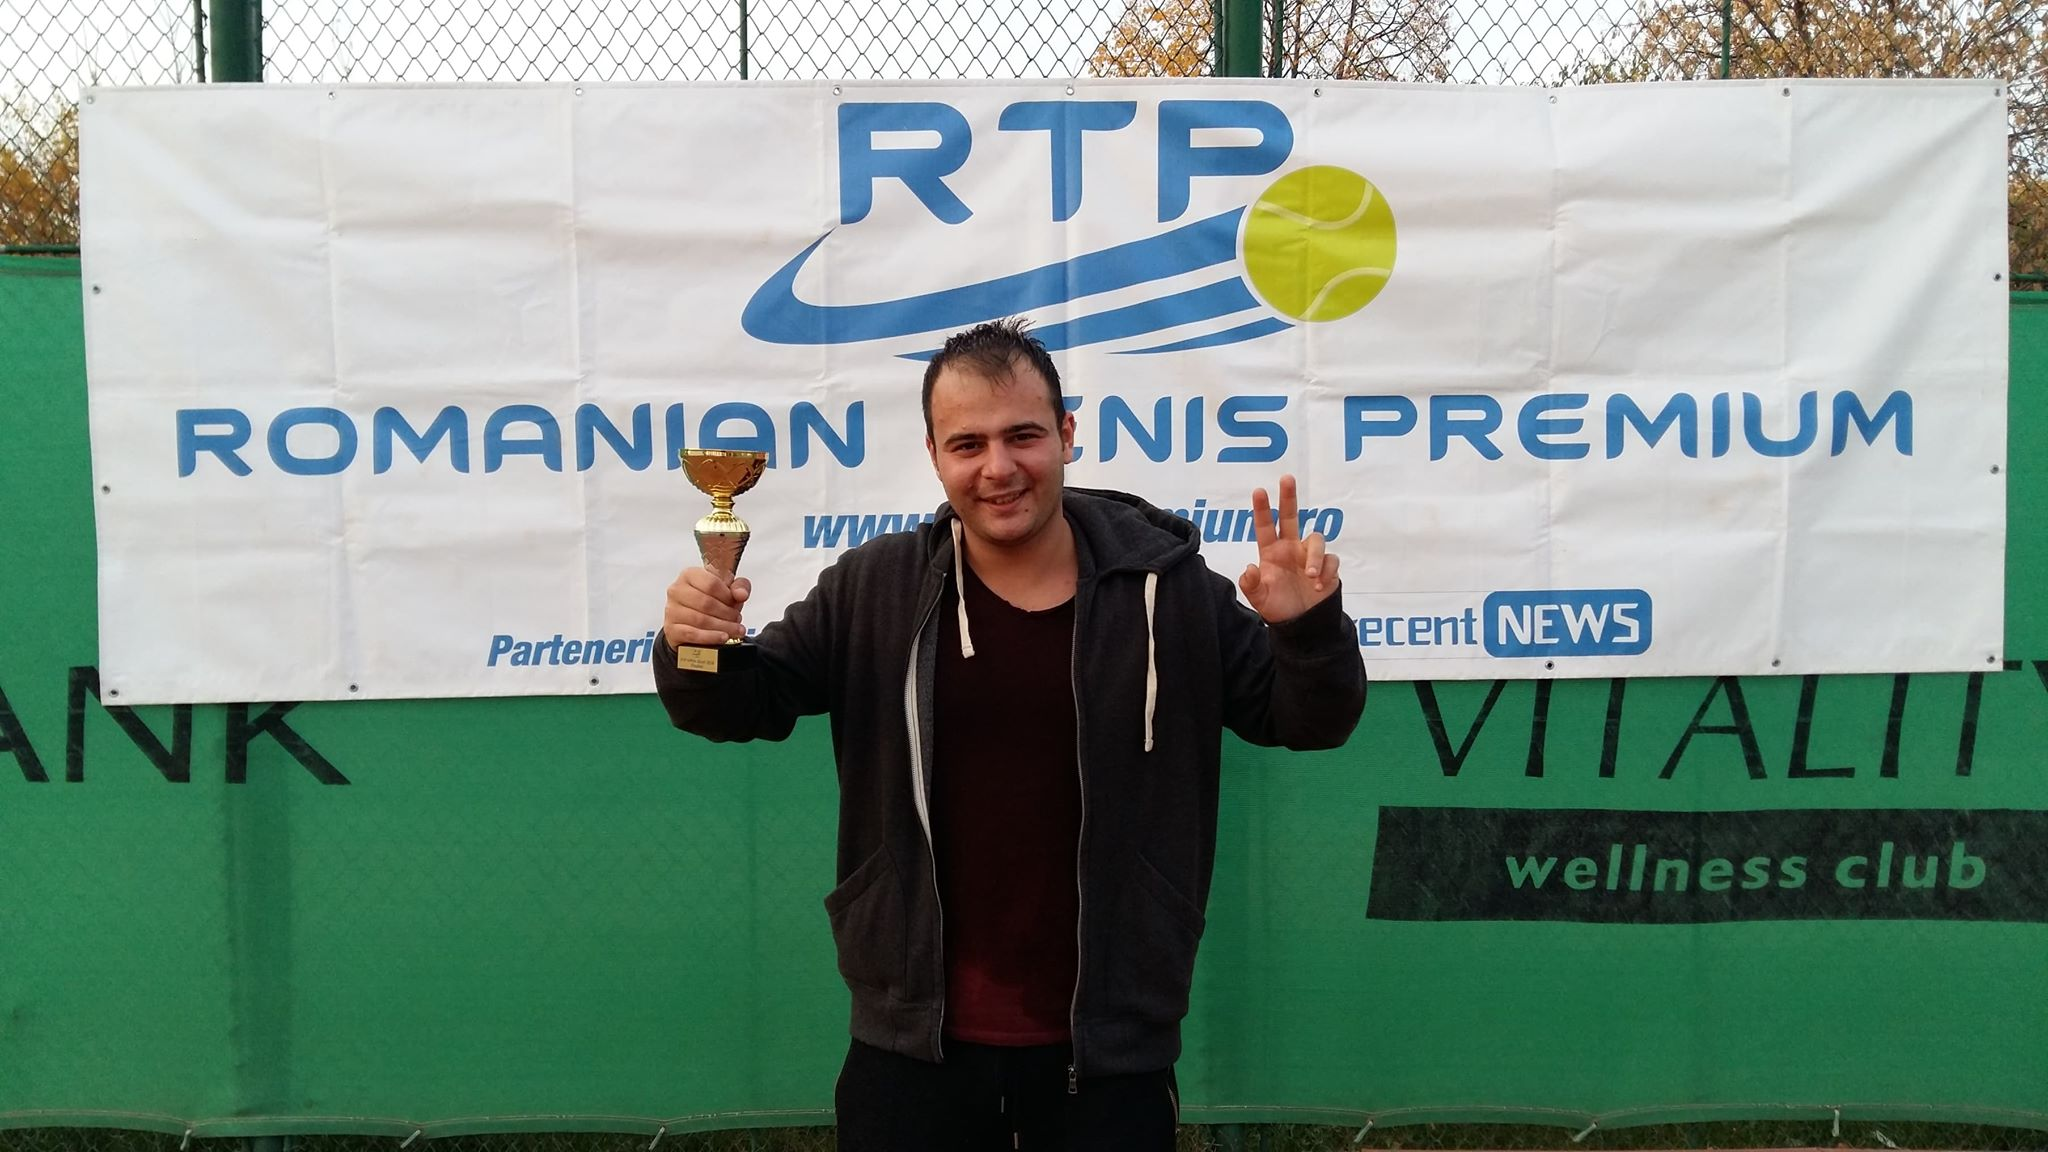 vlad orbisor - rtp open gold